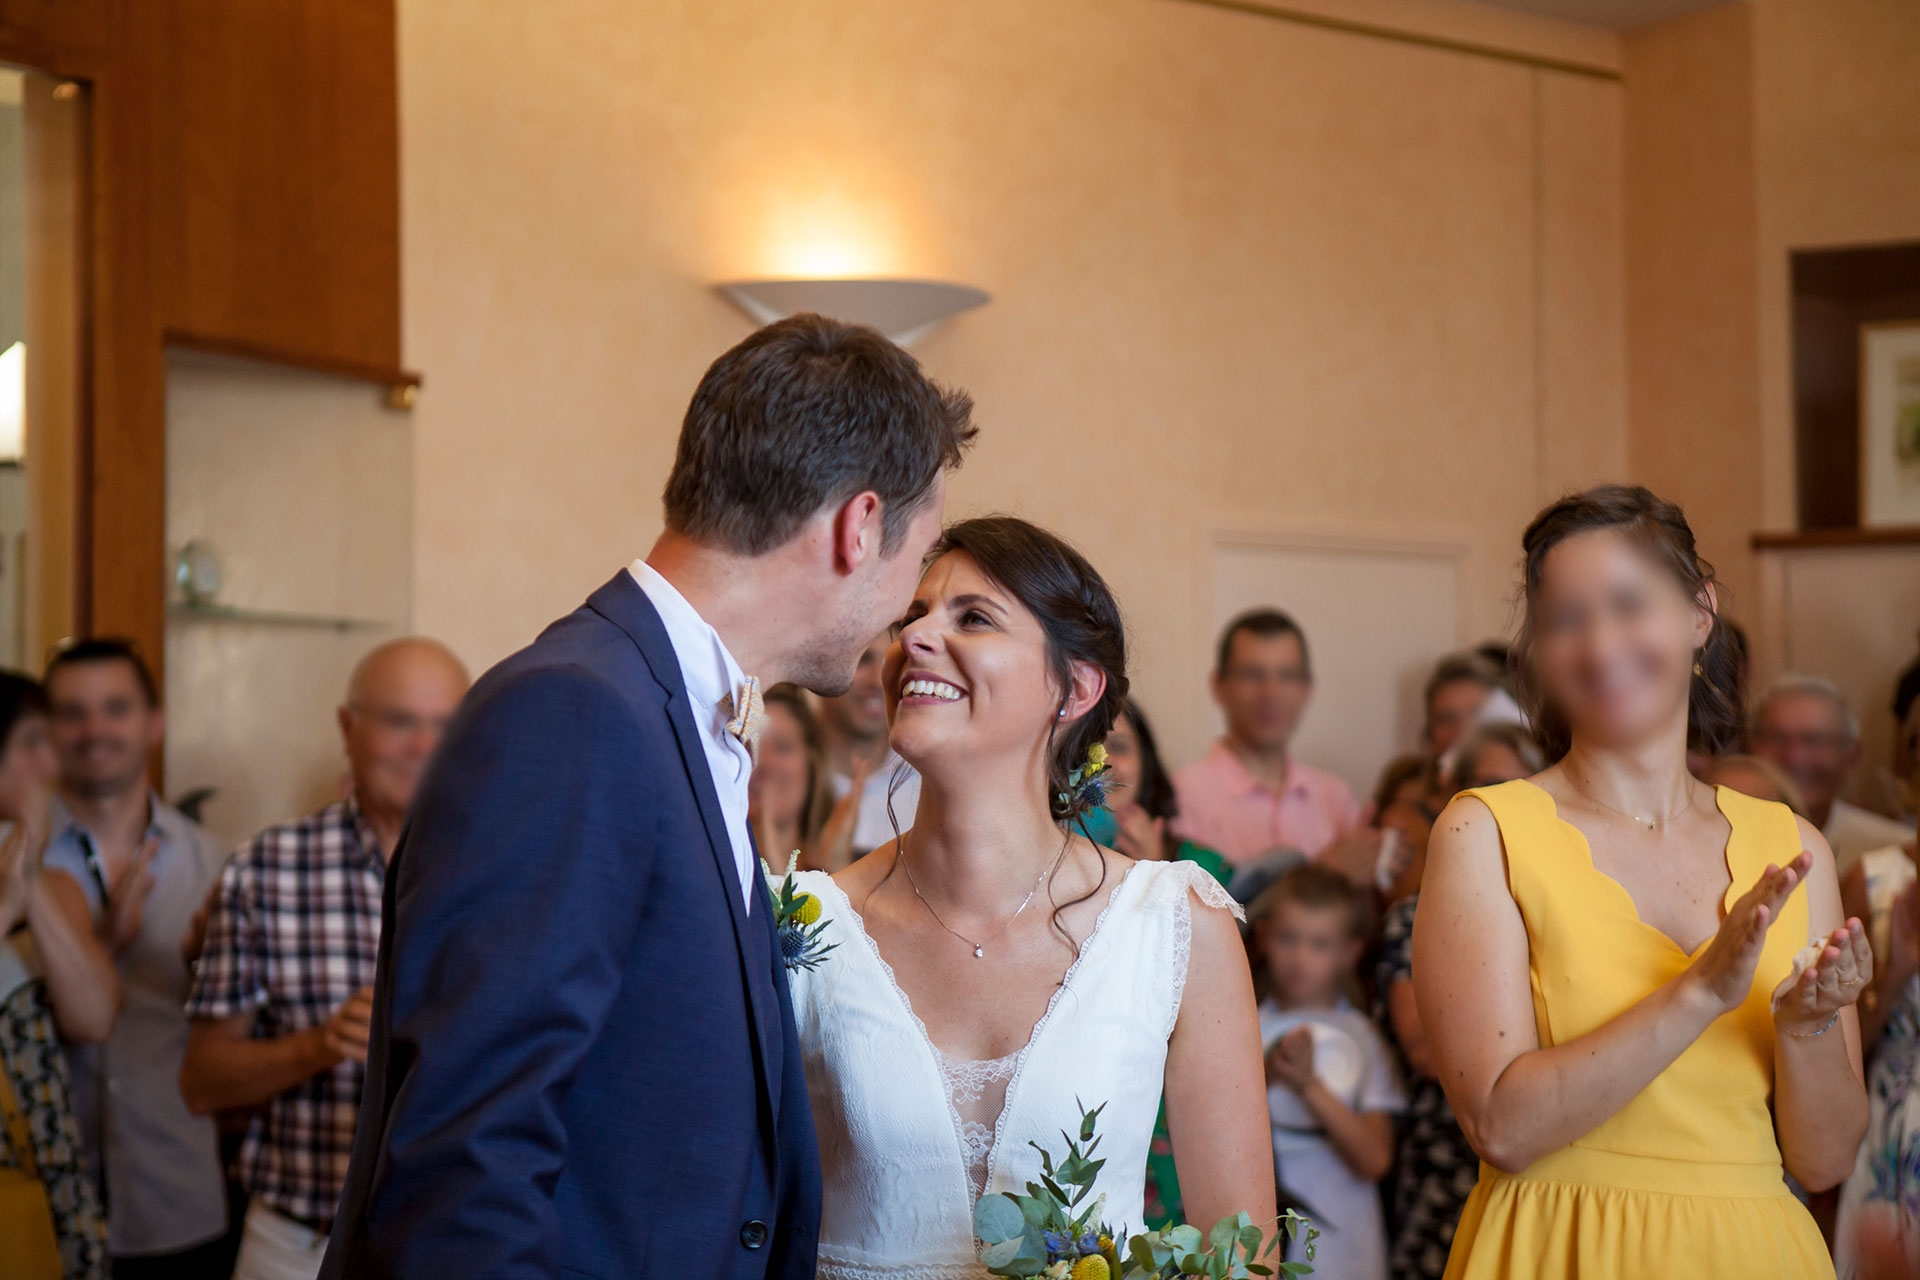 particuliers-evenements-mariage-oui-elise&quentin-23